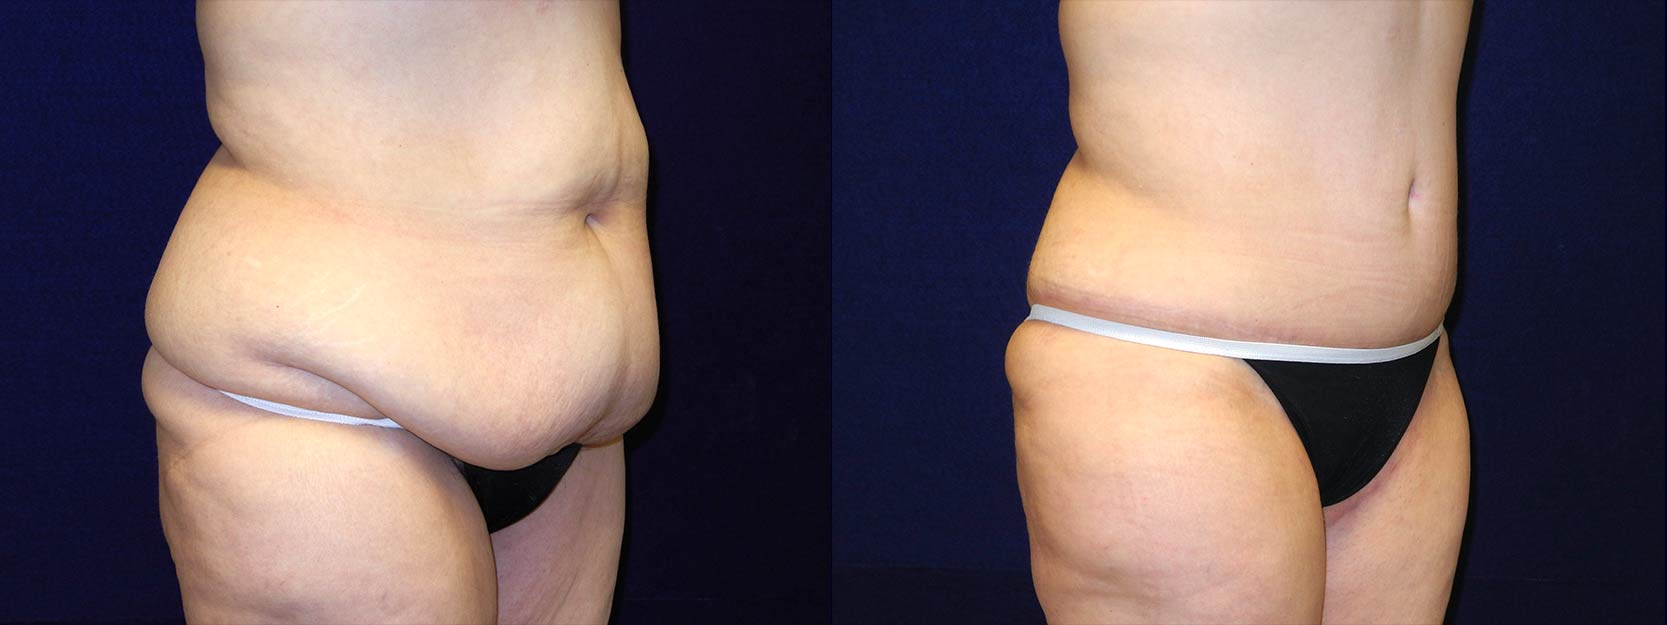 Right 3/4 View - Circumferential Tummy Tuck